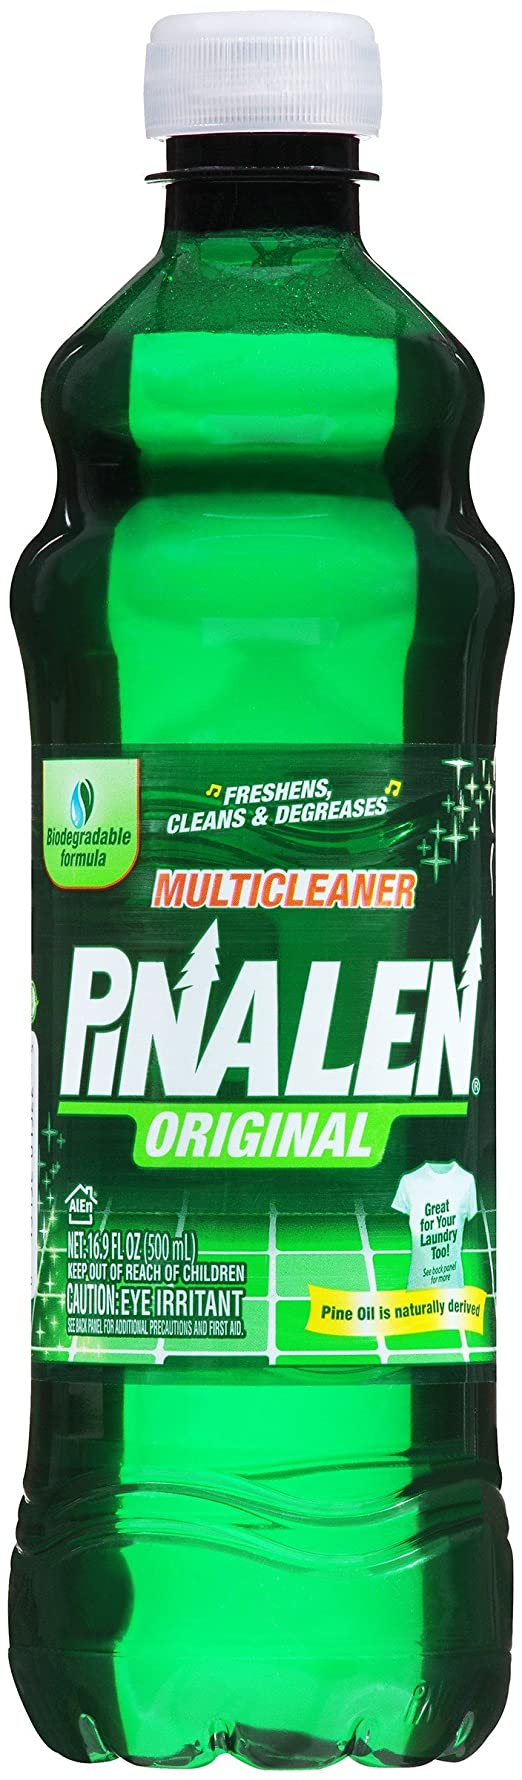 Pinalen Multi cleaner 16.9oz